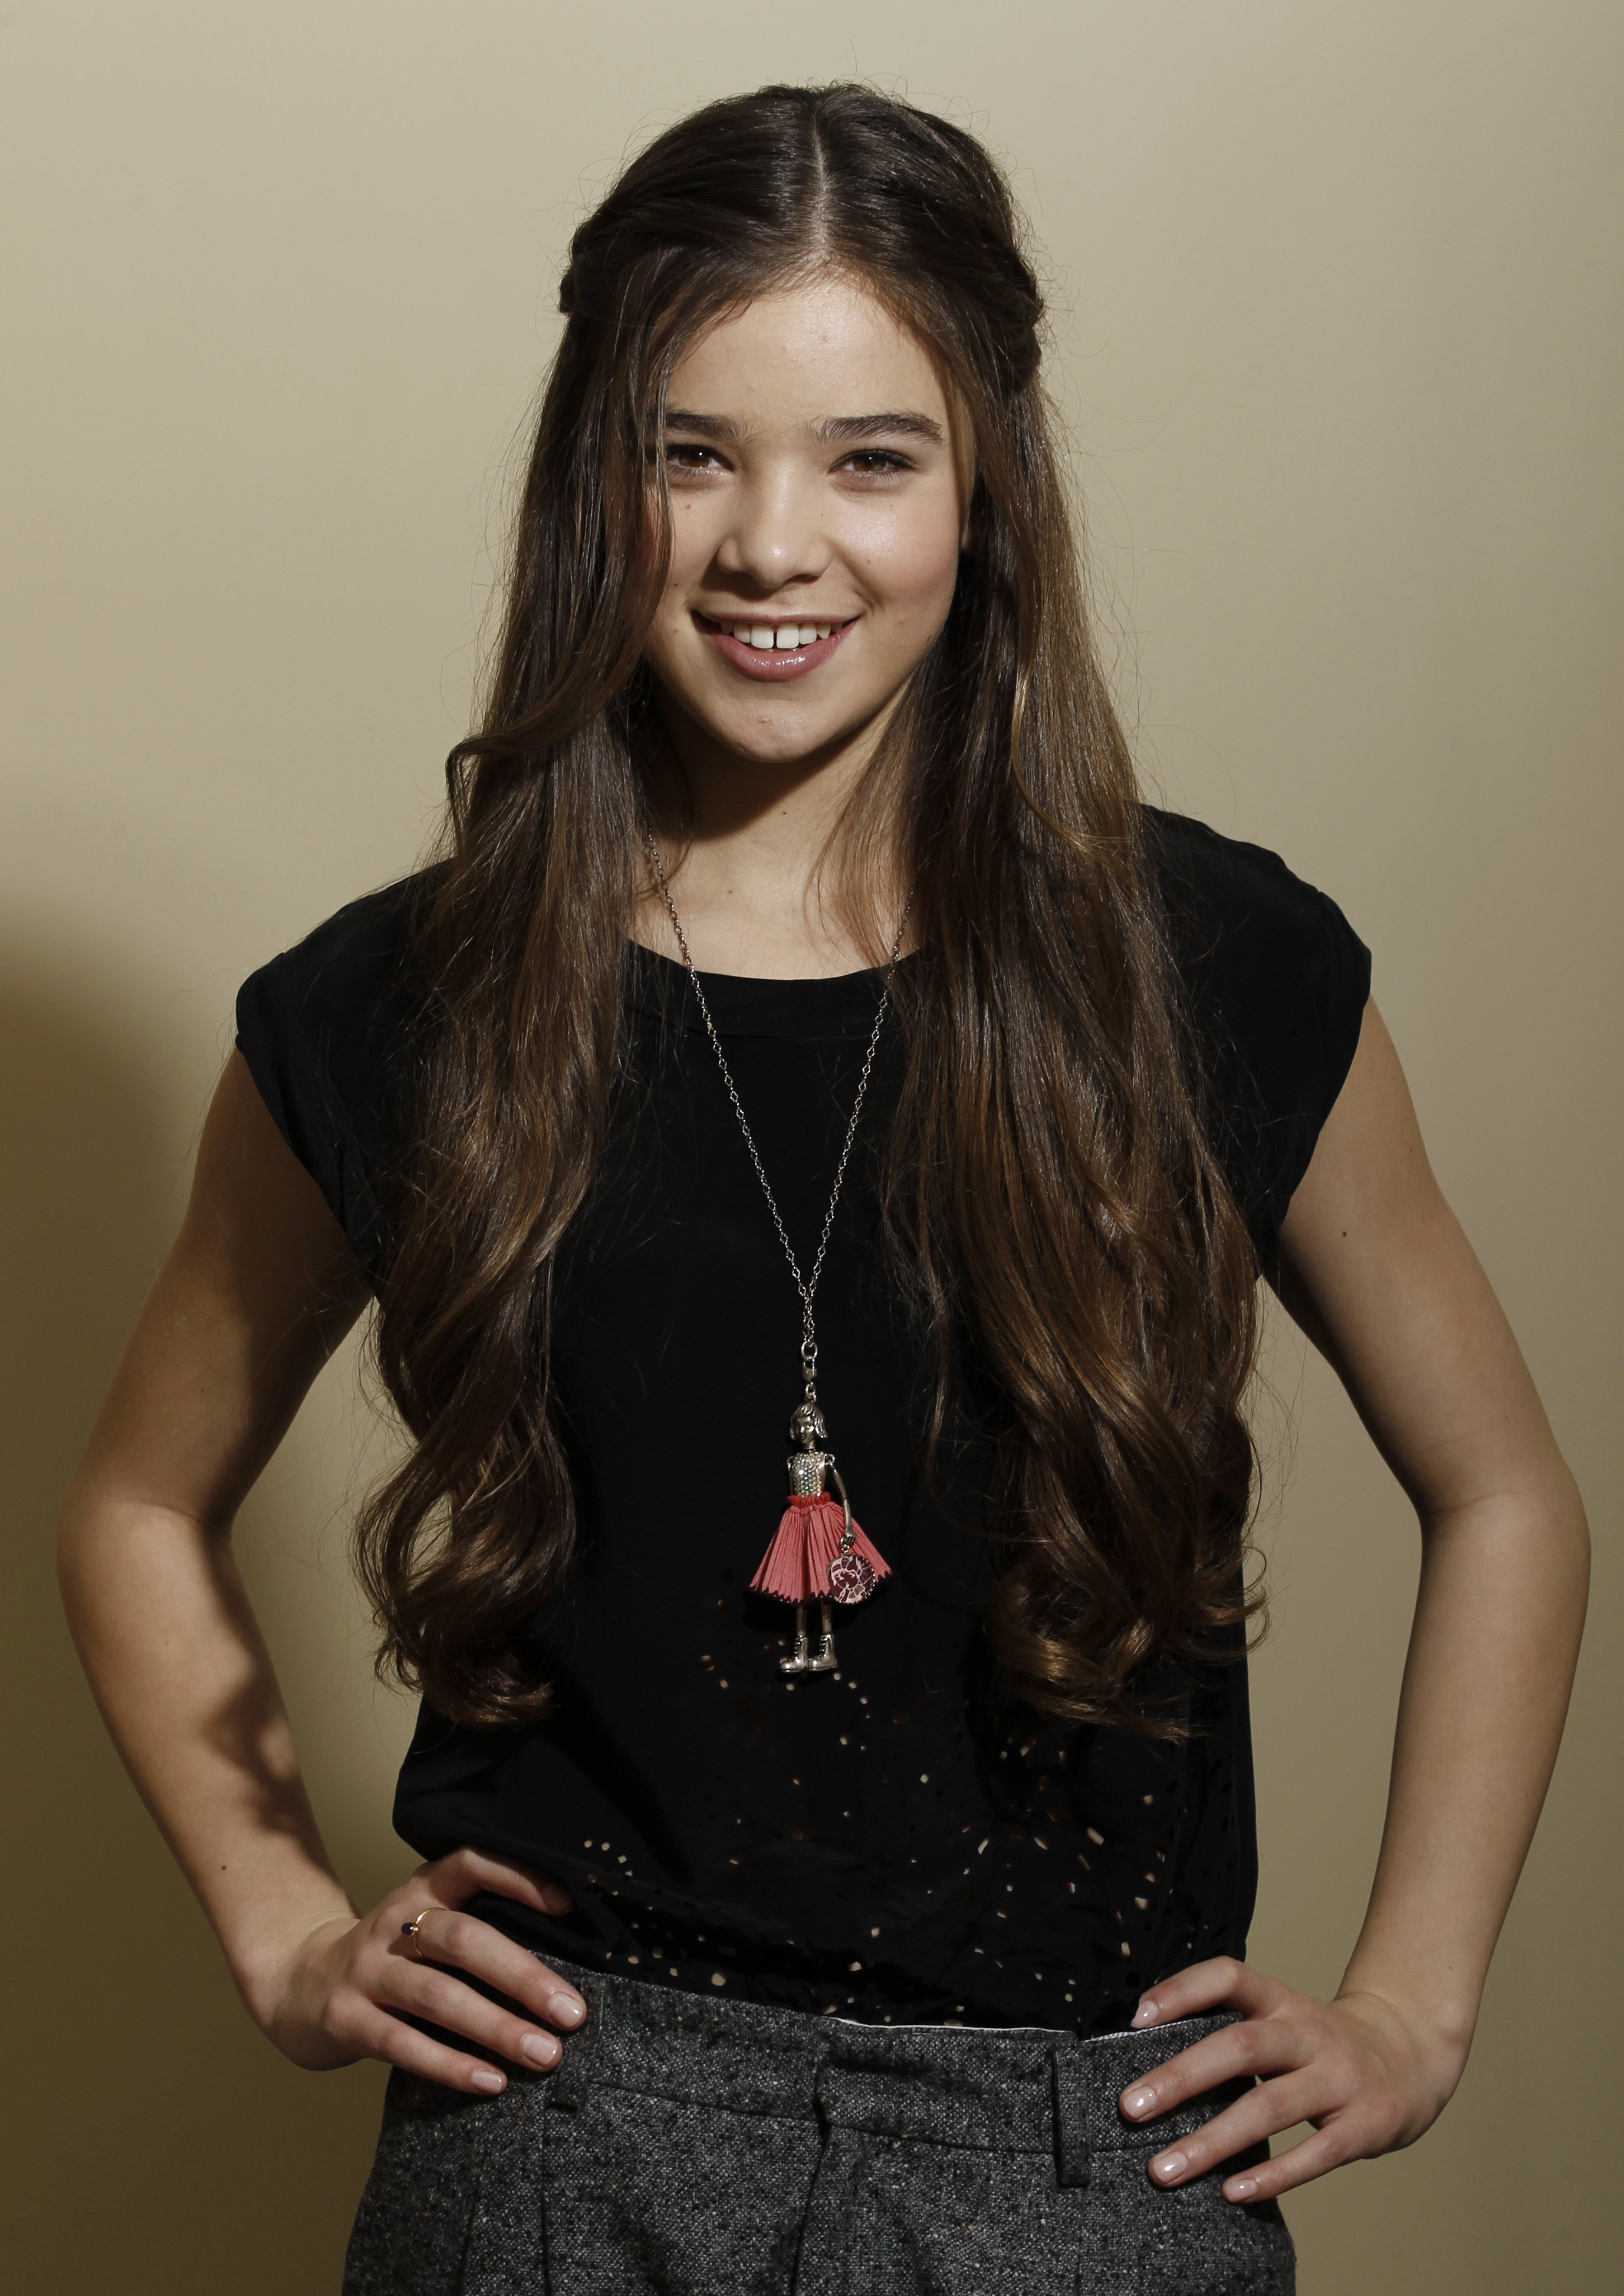 Hailee Steinfeld Pictures Gallery | Full HD Pictures